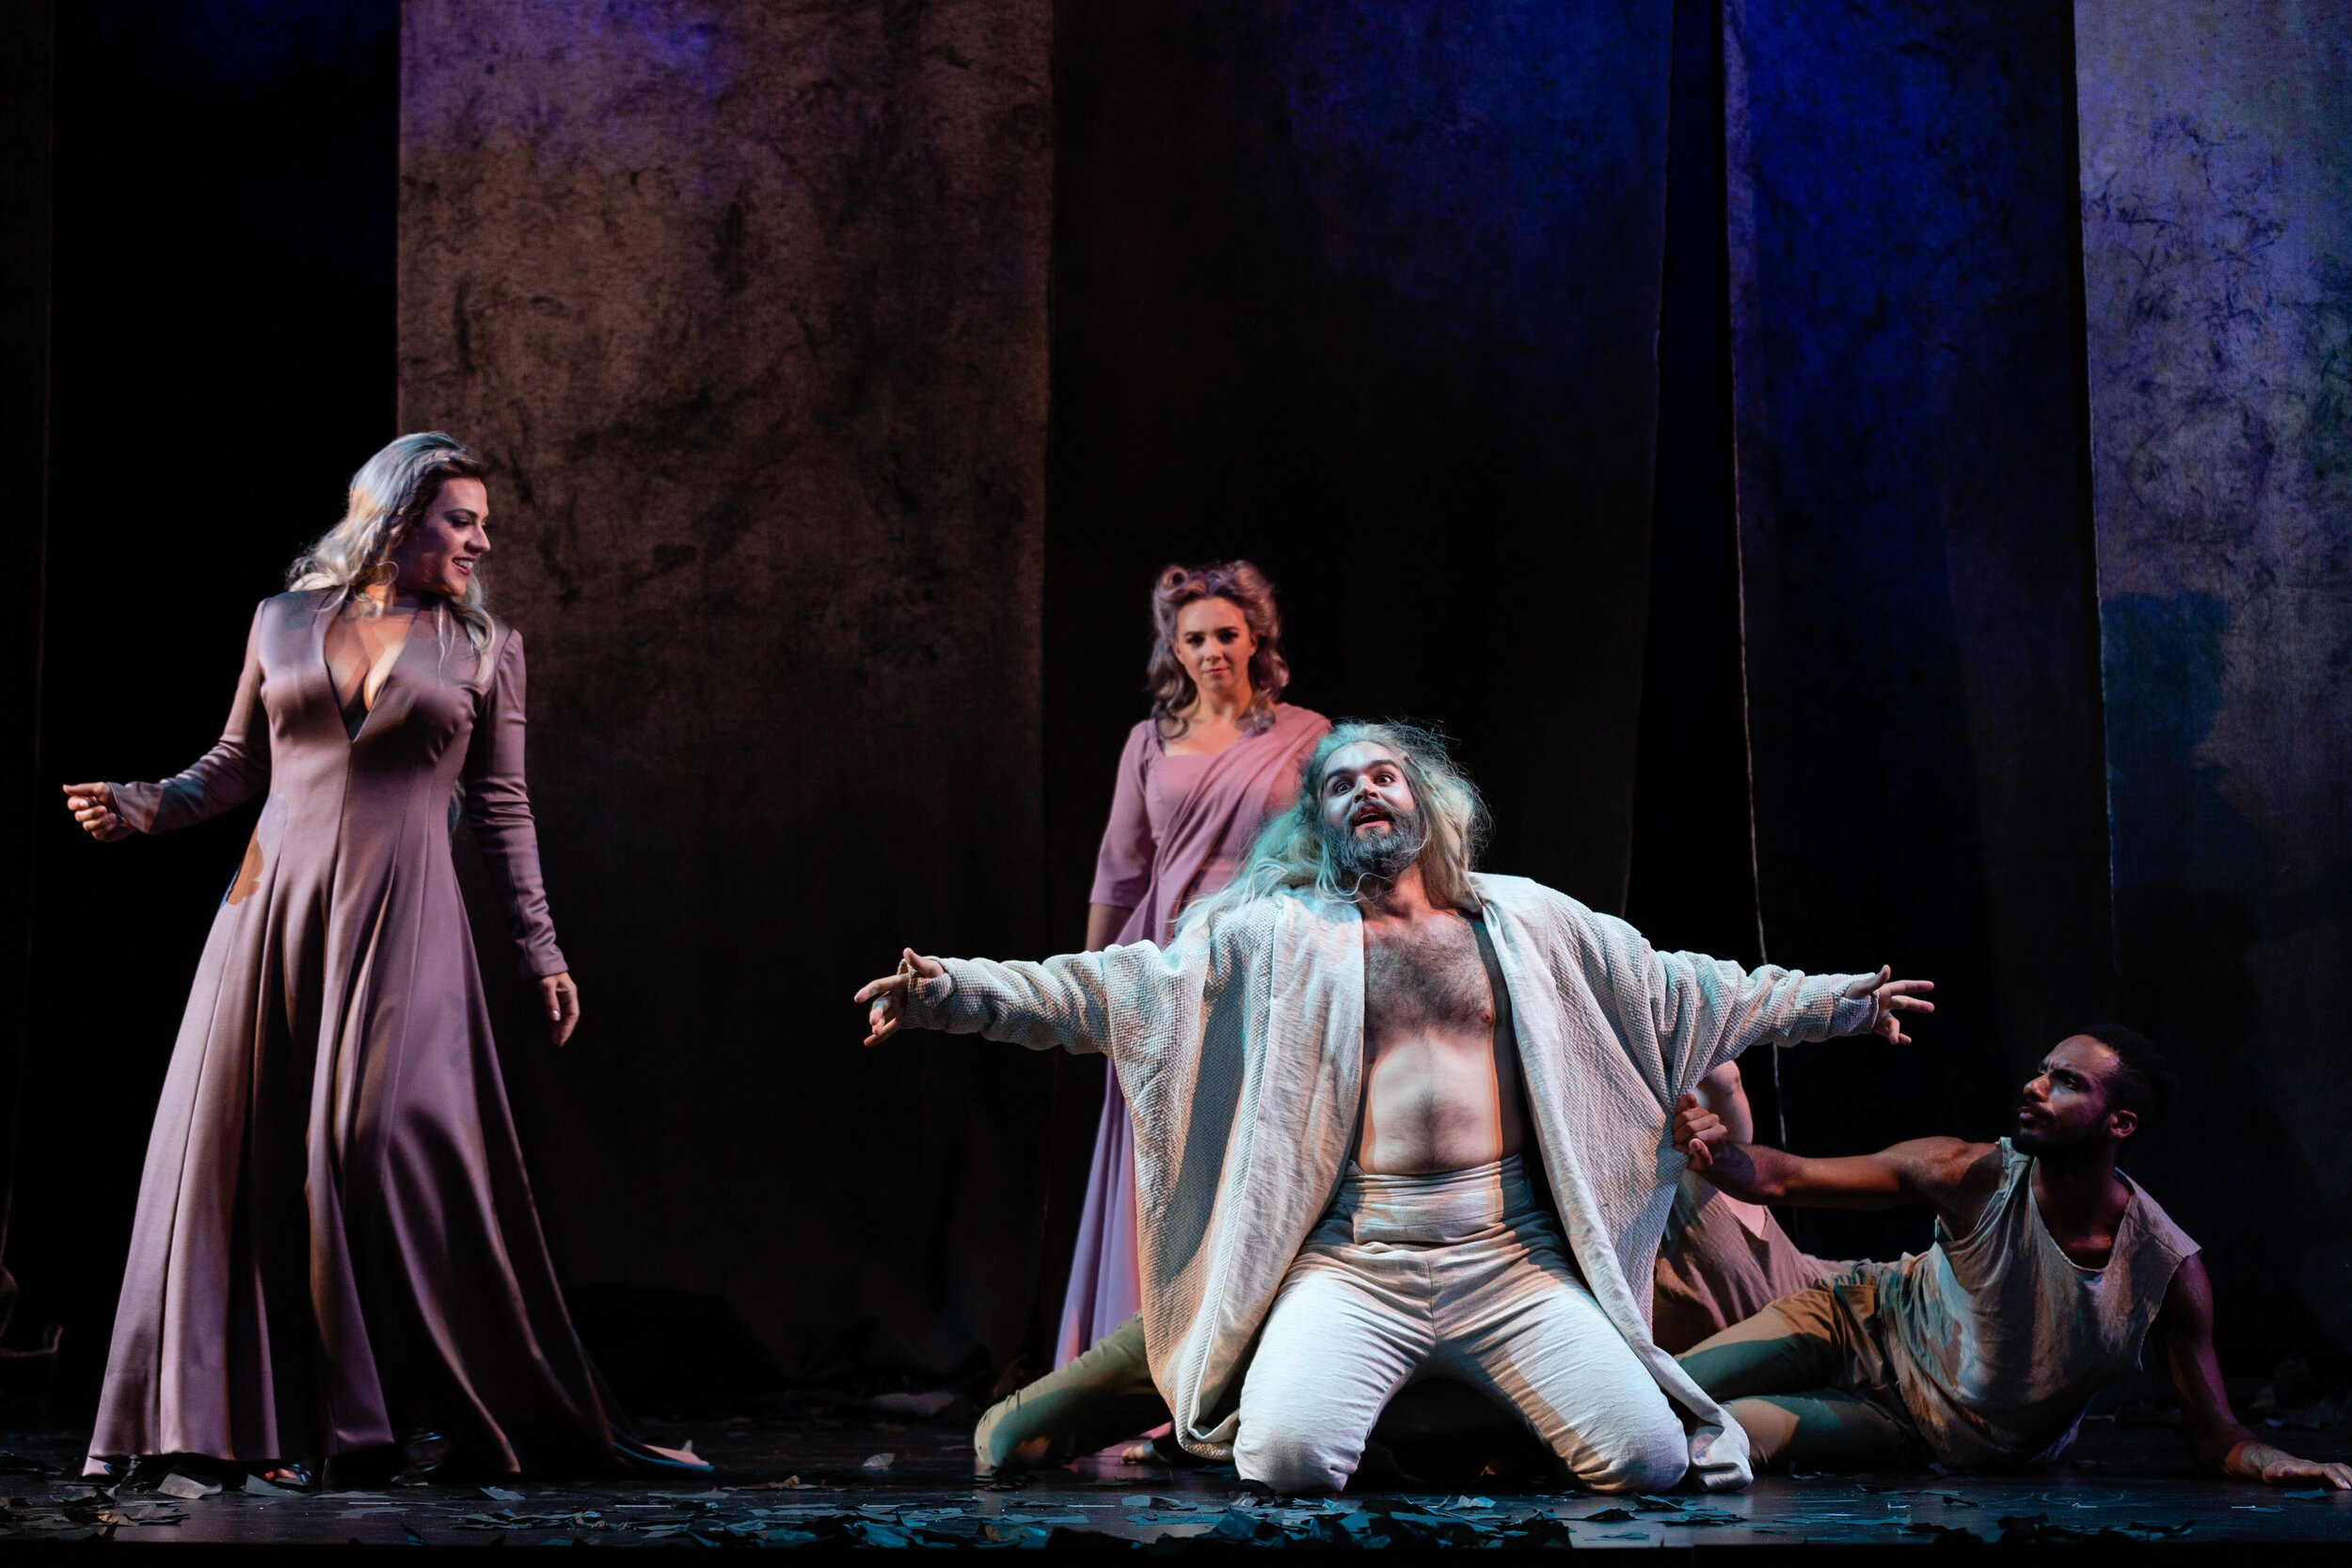 Daniela Mack as Juno, Sarah Shafer as Iris, and Alex Rosen as Somnus. Photo by Dominic M. Mercier; courtesy of Opera Philadelphia.